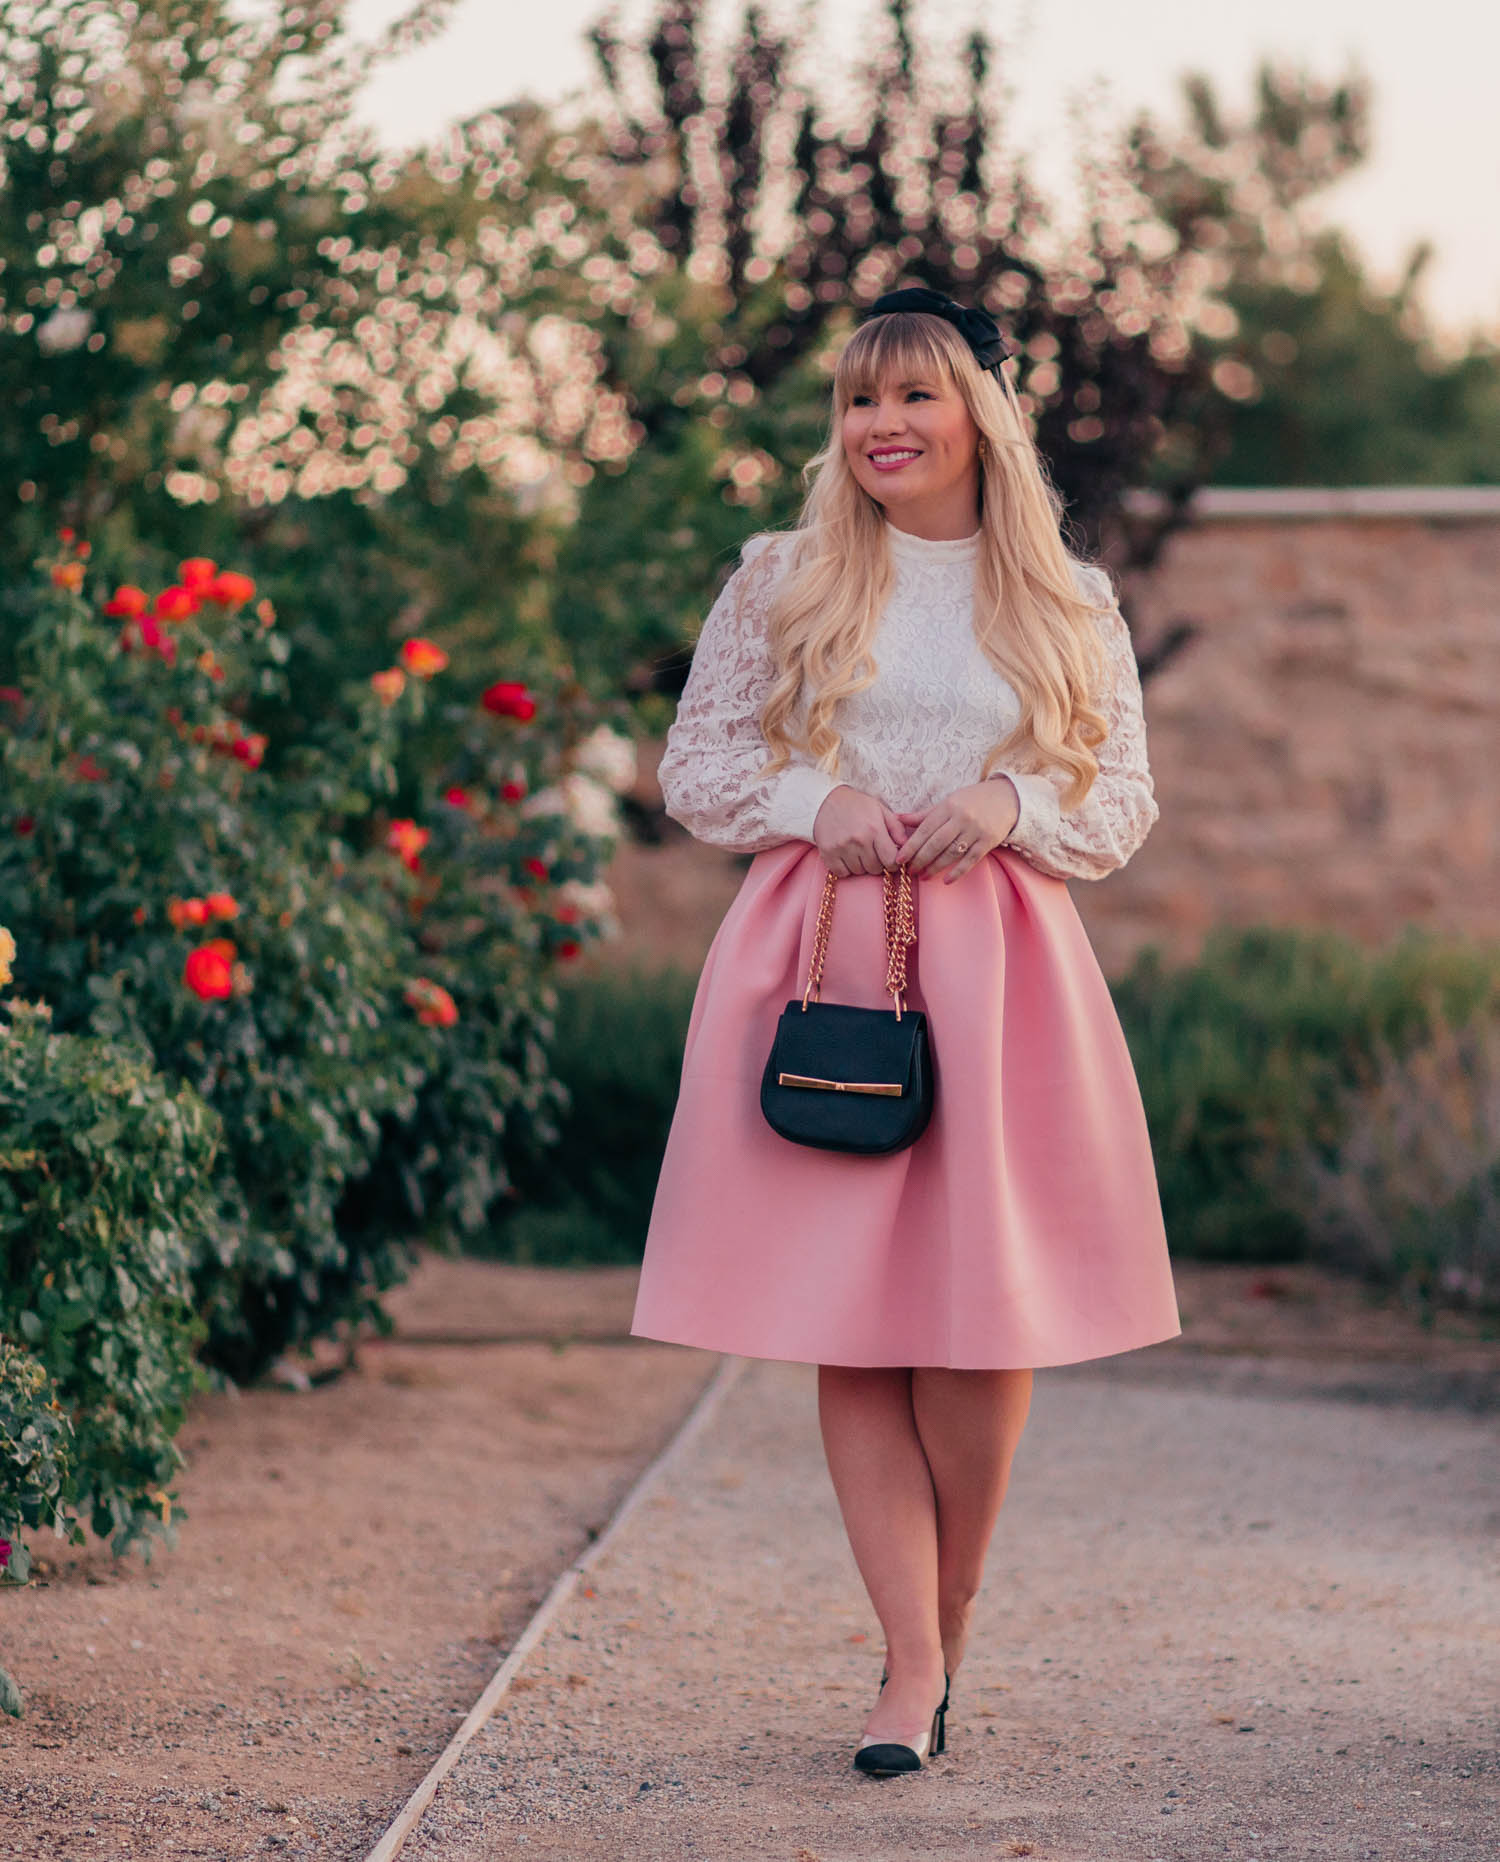 Fashion Blogger Elizabeth Hugen of Lizzie in Lace styles a white lace top with a pink skirt for gossip girl inspired style